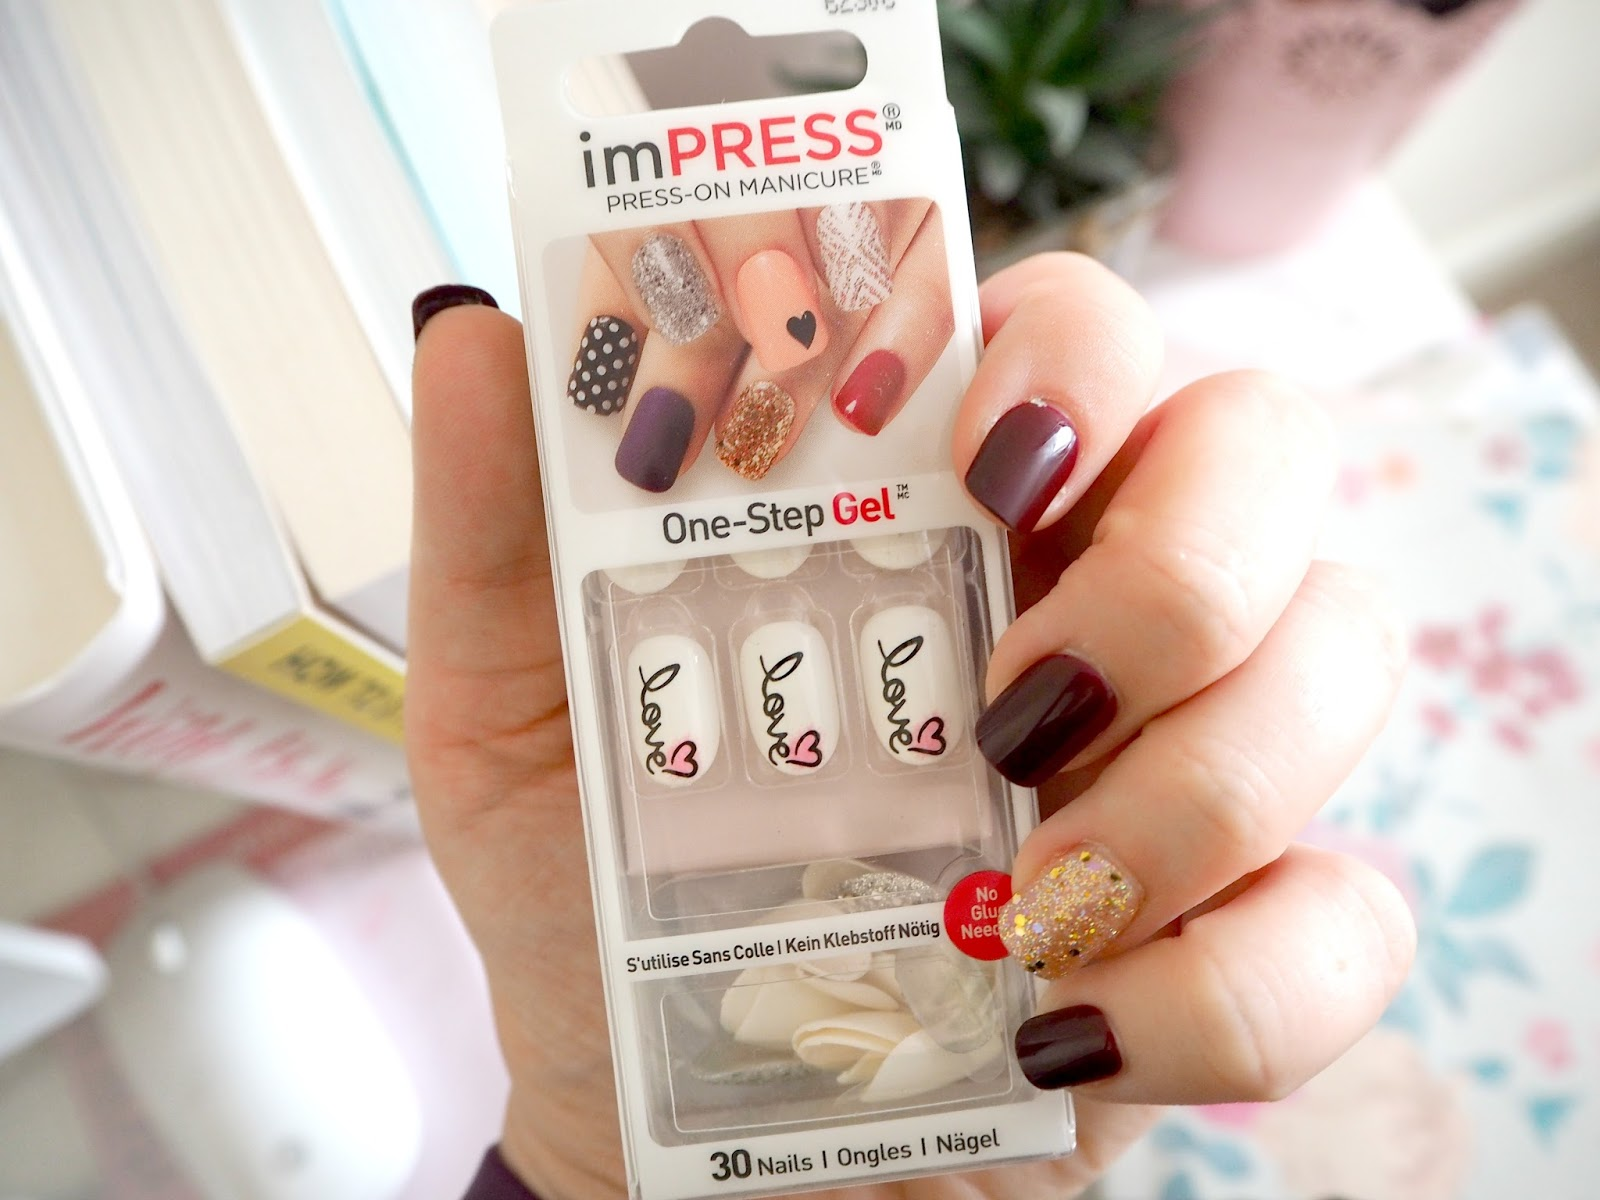 THE PERFECT NAILS FOR BUSY BEES   Love, Maisie   Impress Gel Nails   www.lovemaisie.com